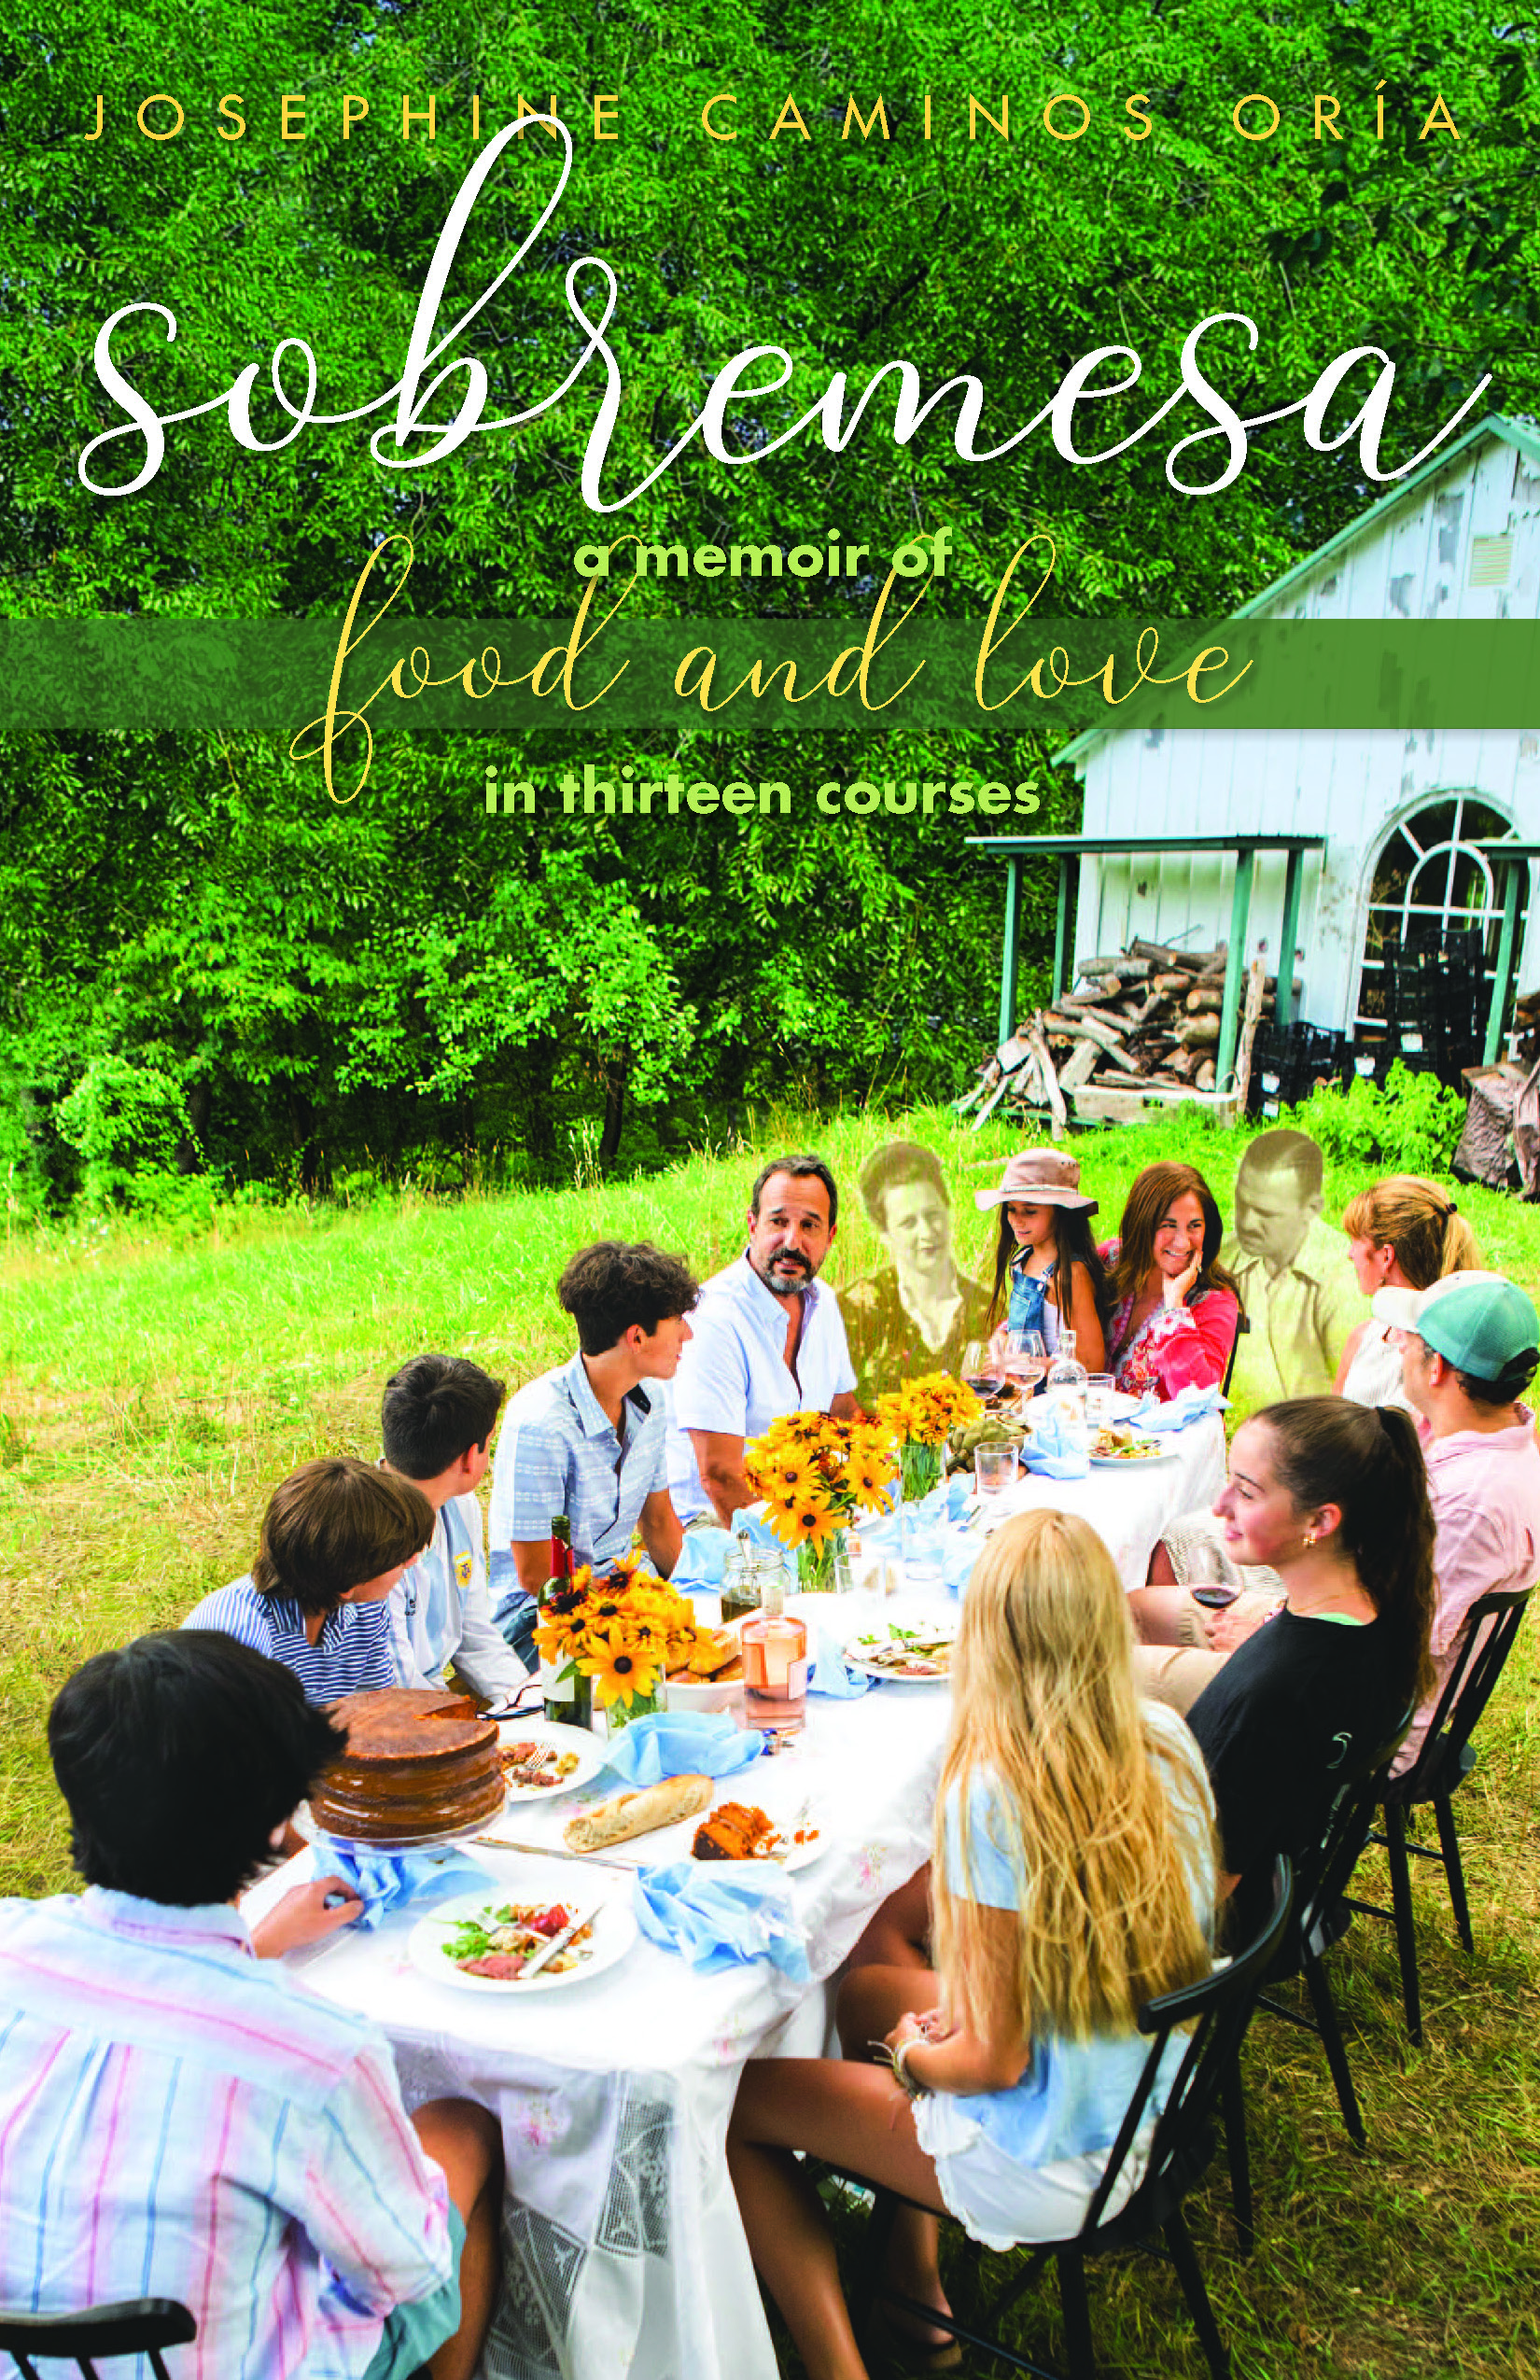 Sobremesa: A Memoir of Food and Love in Thirteen Courses